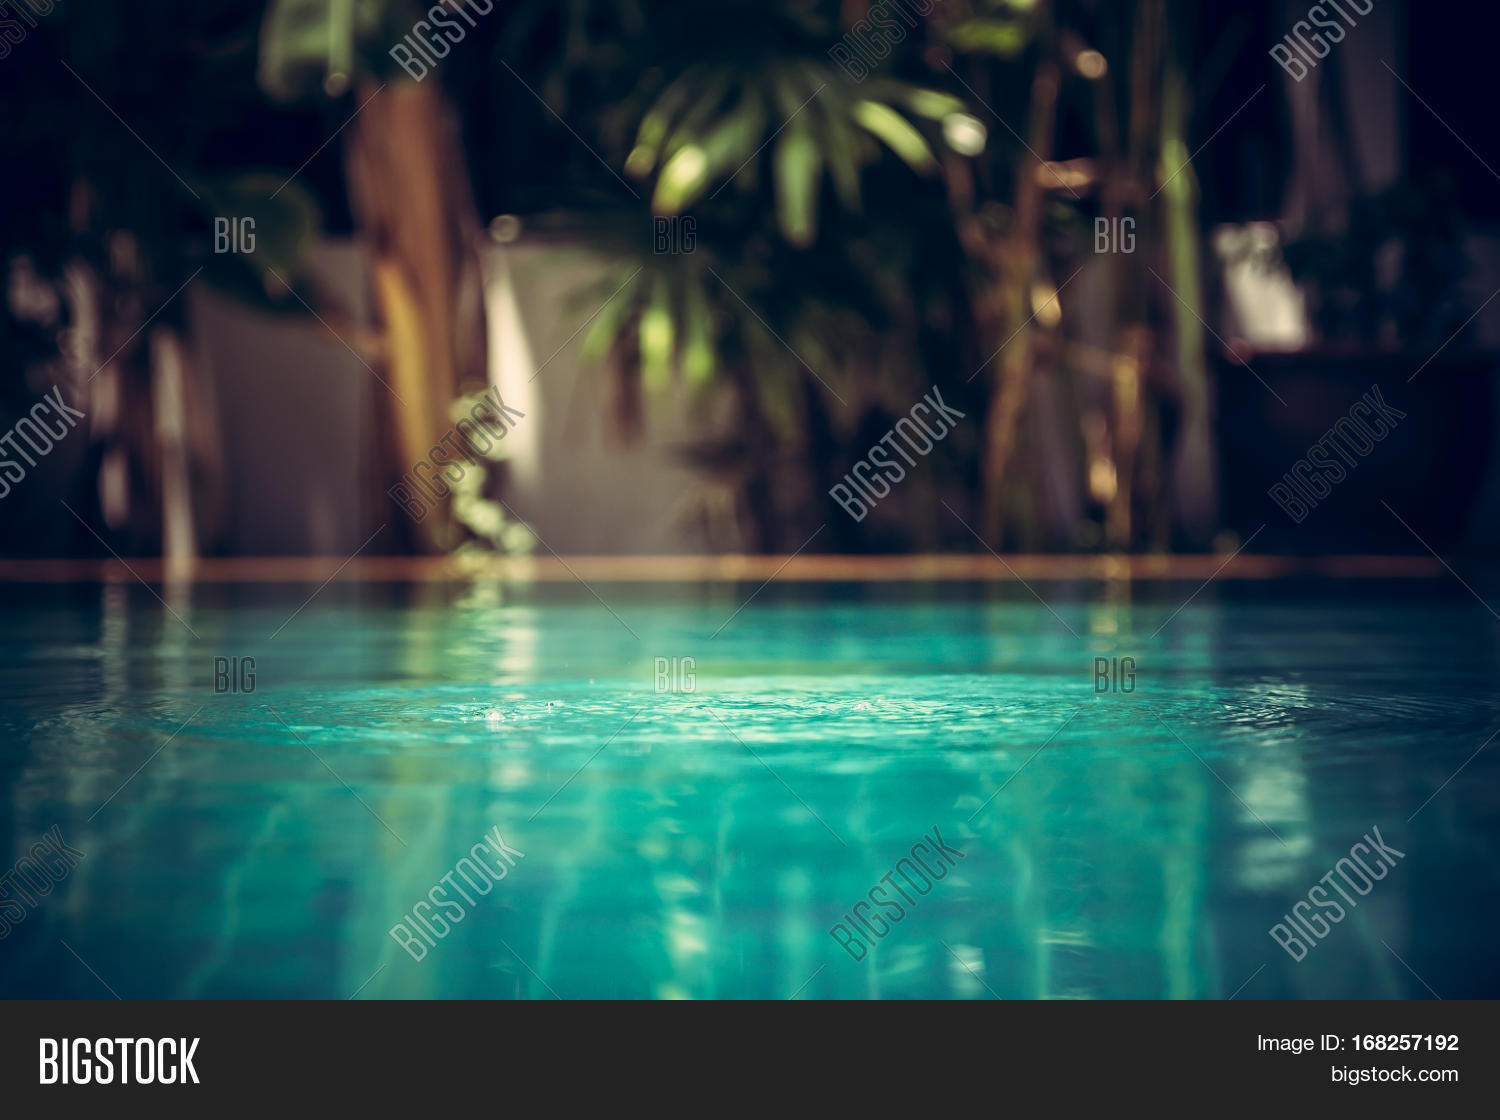 Swimming Pool Background In Vintage Style With Ripples On Turquoise Water And Tropical Plants Blurred